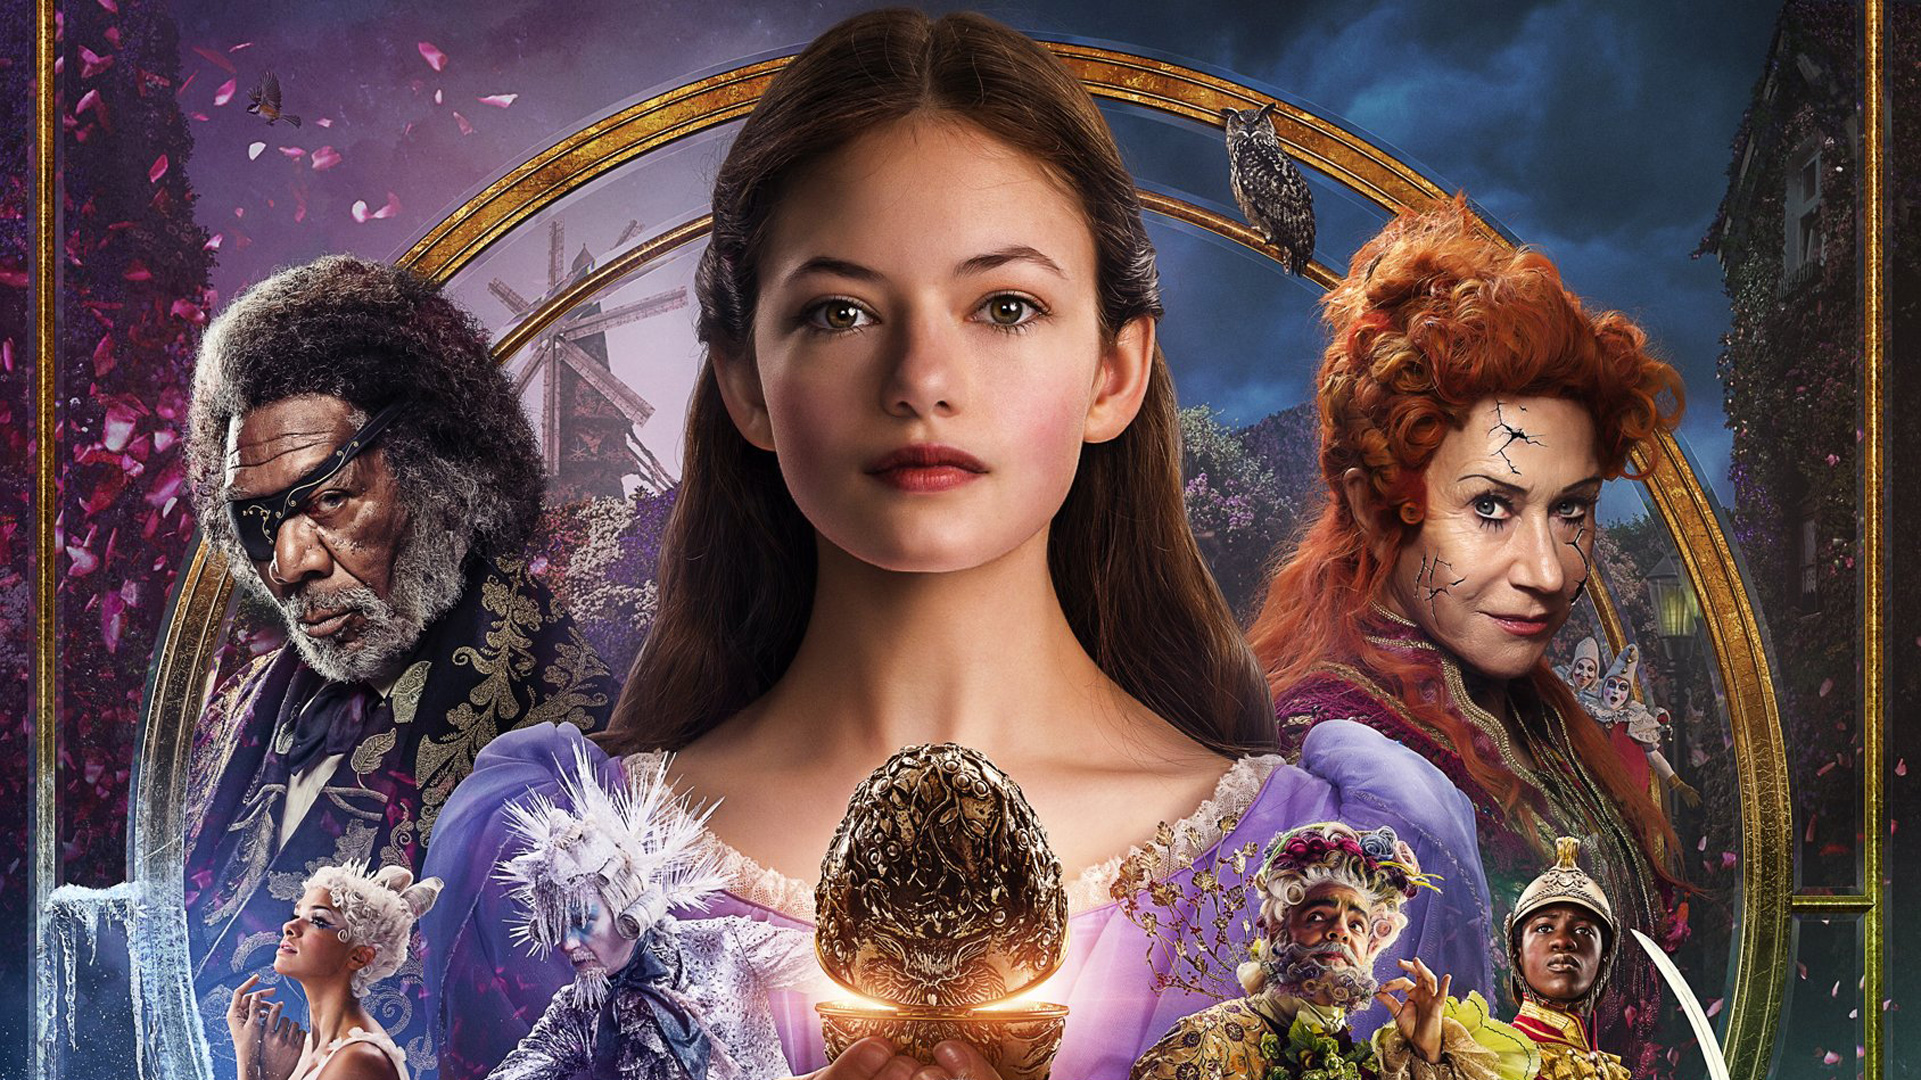 The Nutcracker And The Four Realms 2018 Movie Poster Hd Movies 4k Wallpapers Images Backgrounds Photos And Pictures